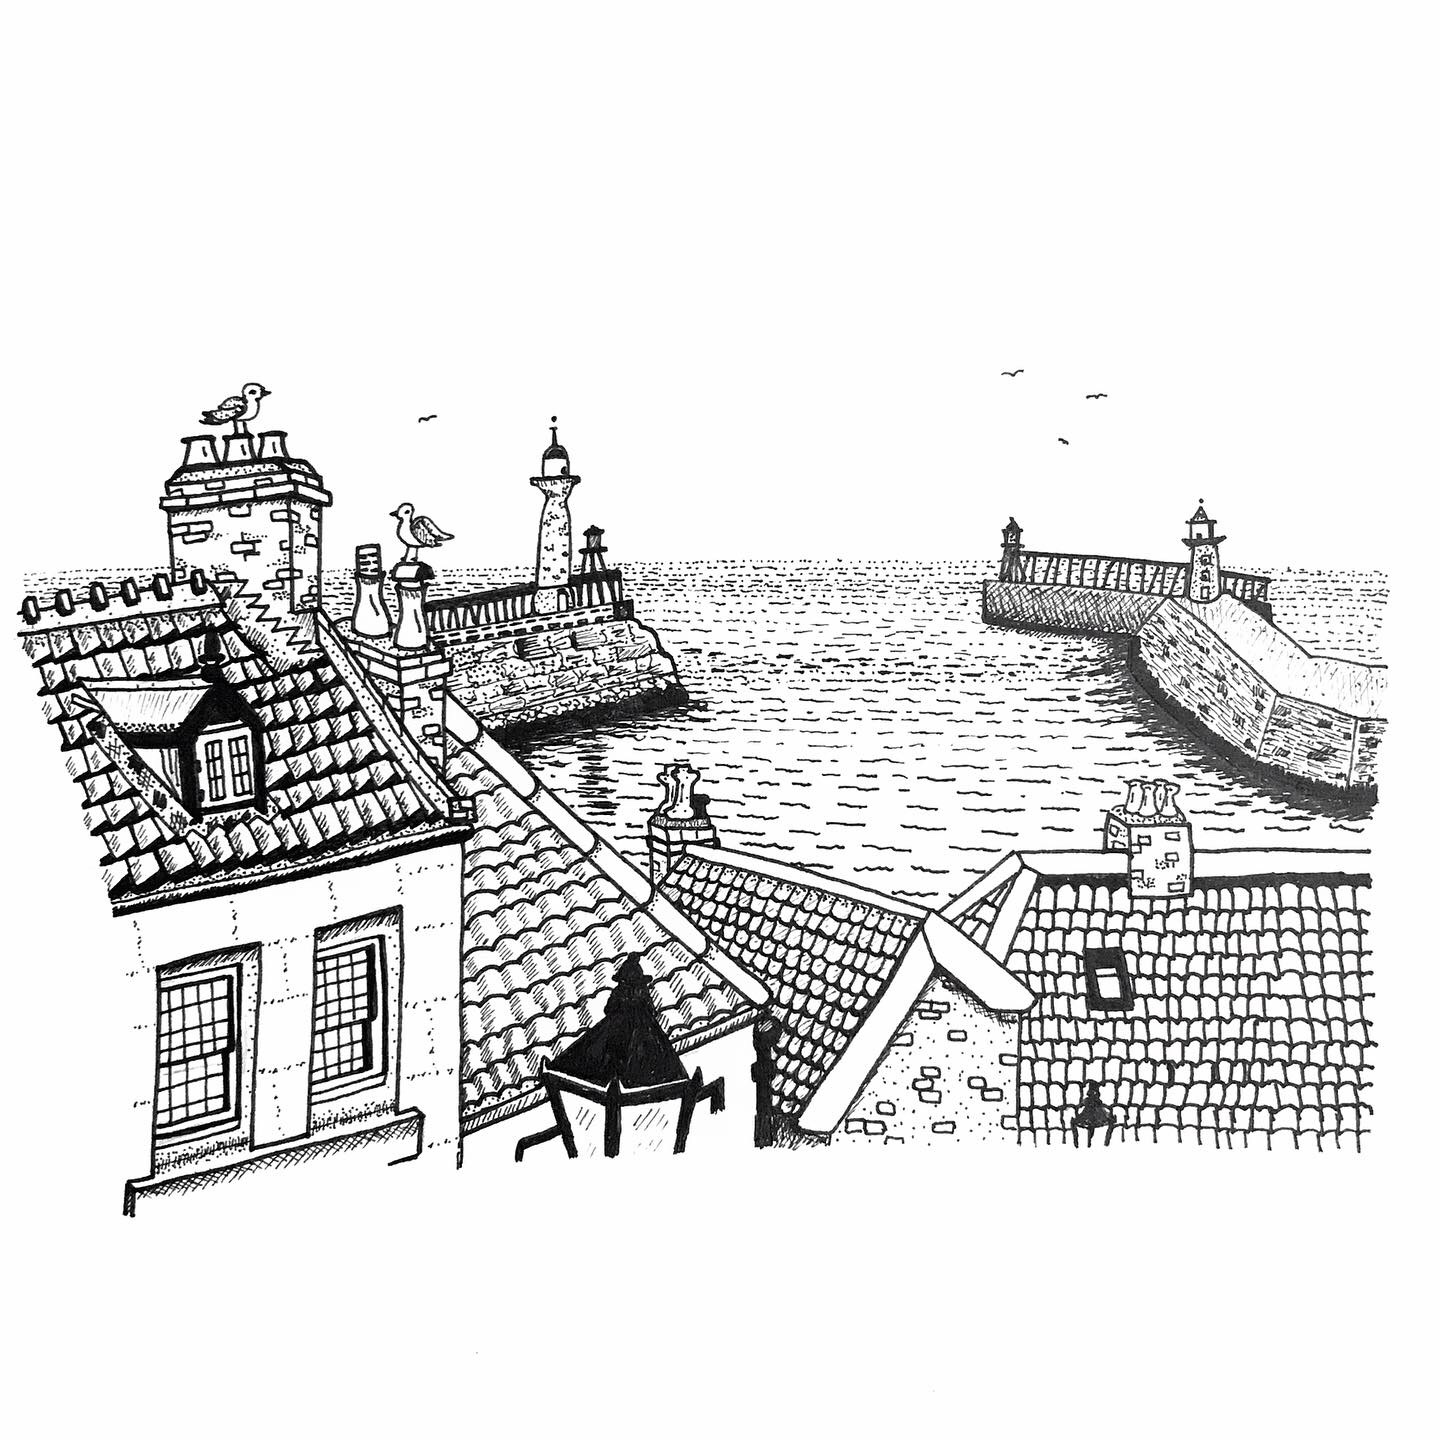 A Hyperactive Artist's Guide to Whitby Part 2